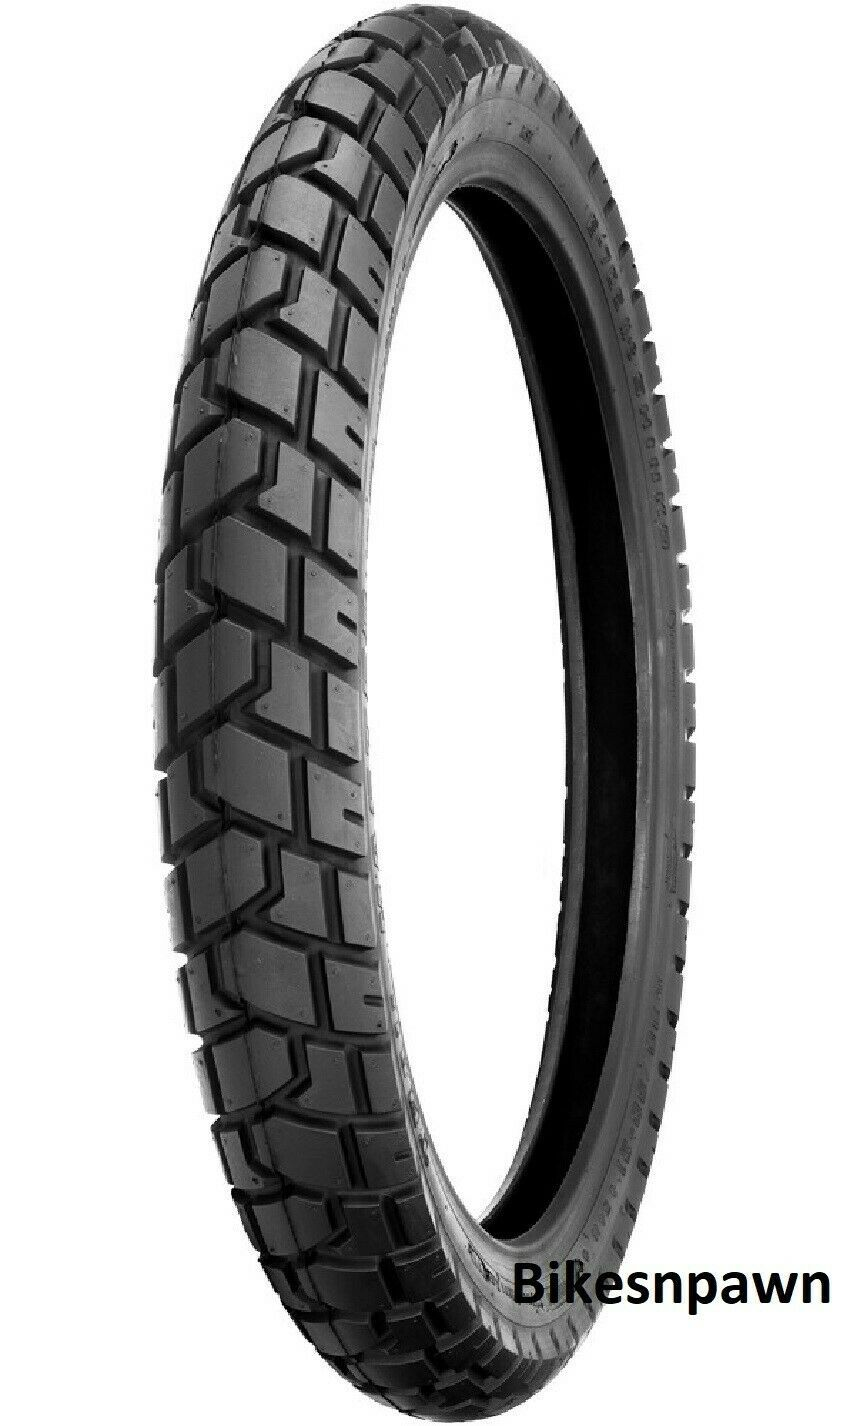 New 110/80R19 TL Shinko 705 Series Dual Sport Radial Front Motorcycle Tire 59H